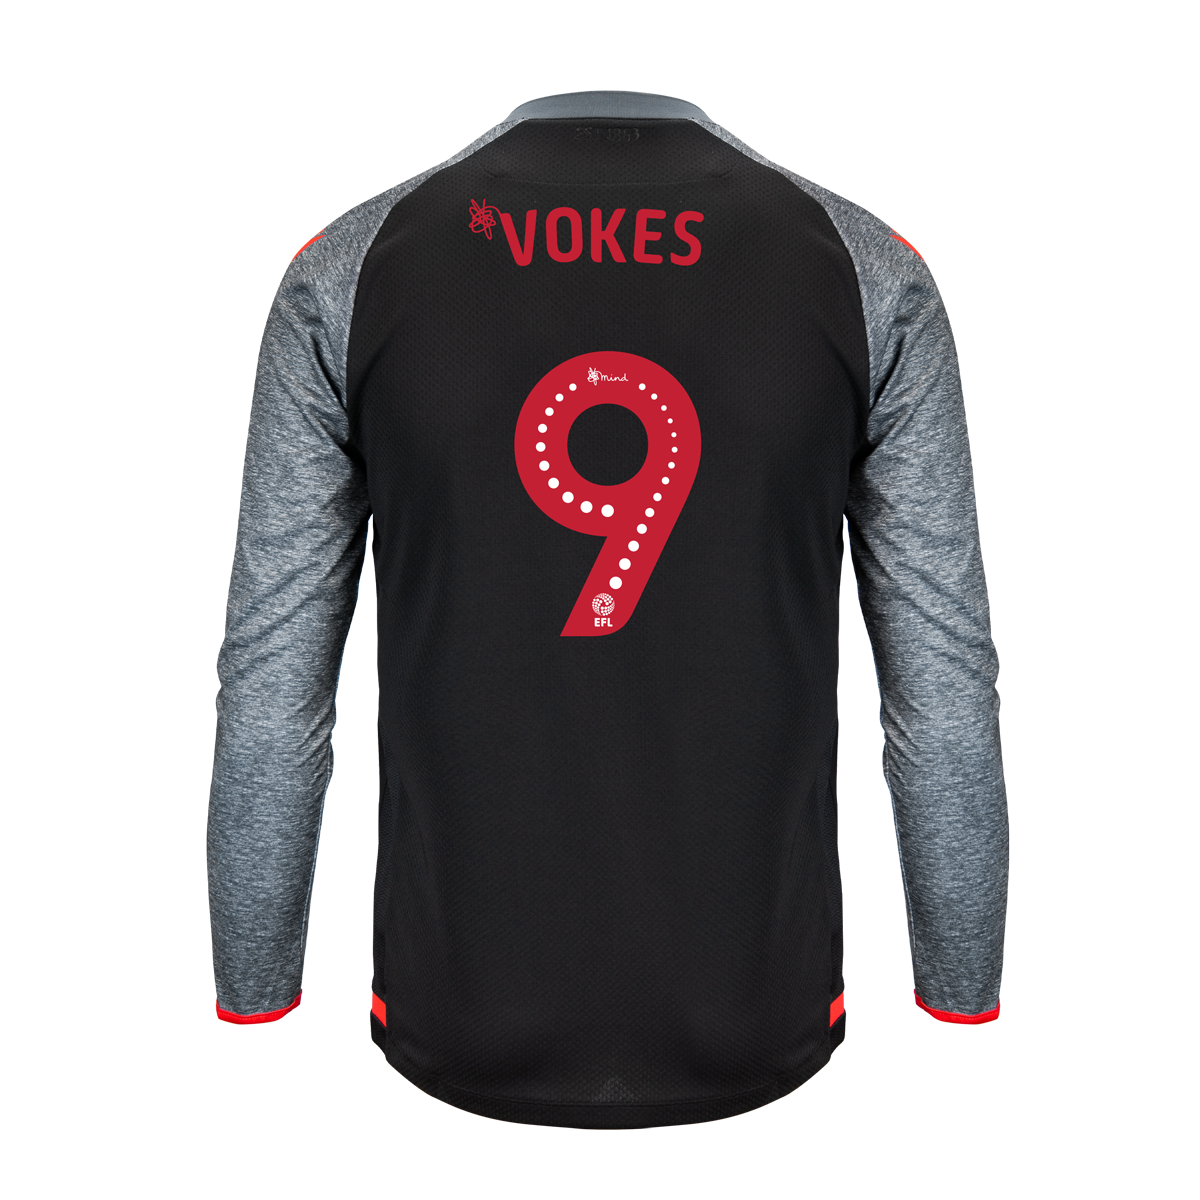 2019/20 Junior Away LS Shirt - Vokes